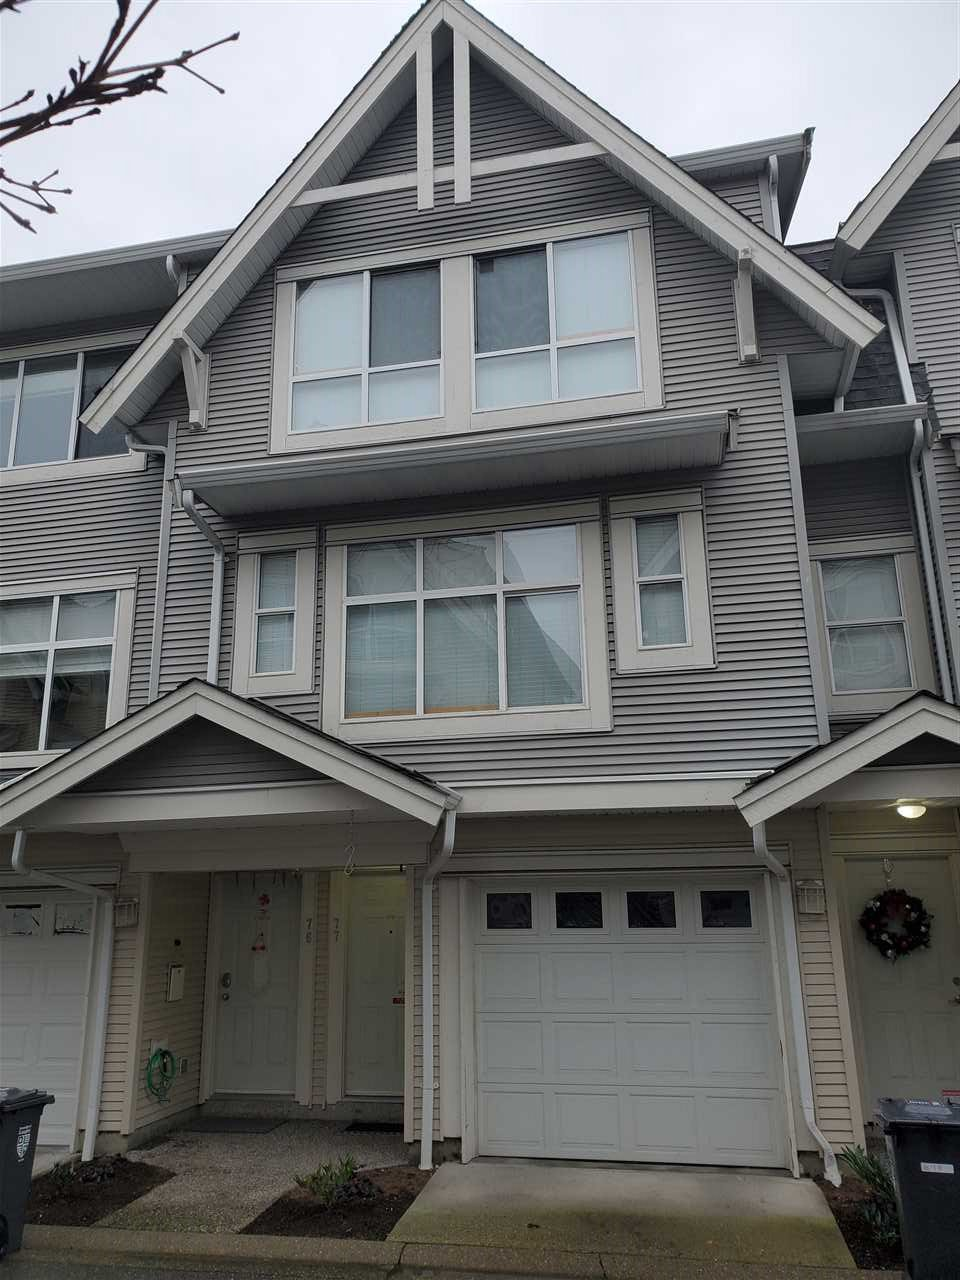 """Main Photo: 77 6450 199TH STREET in Langley: Willoughby Heights Townhouse for sale in """"Logans Landing"""" : MLS®# R2527804"""